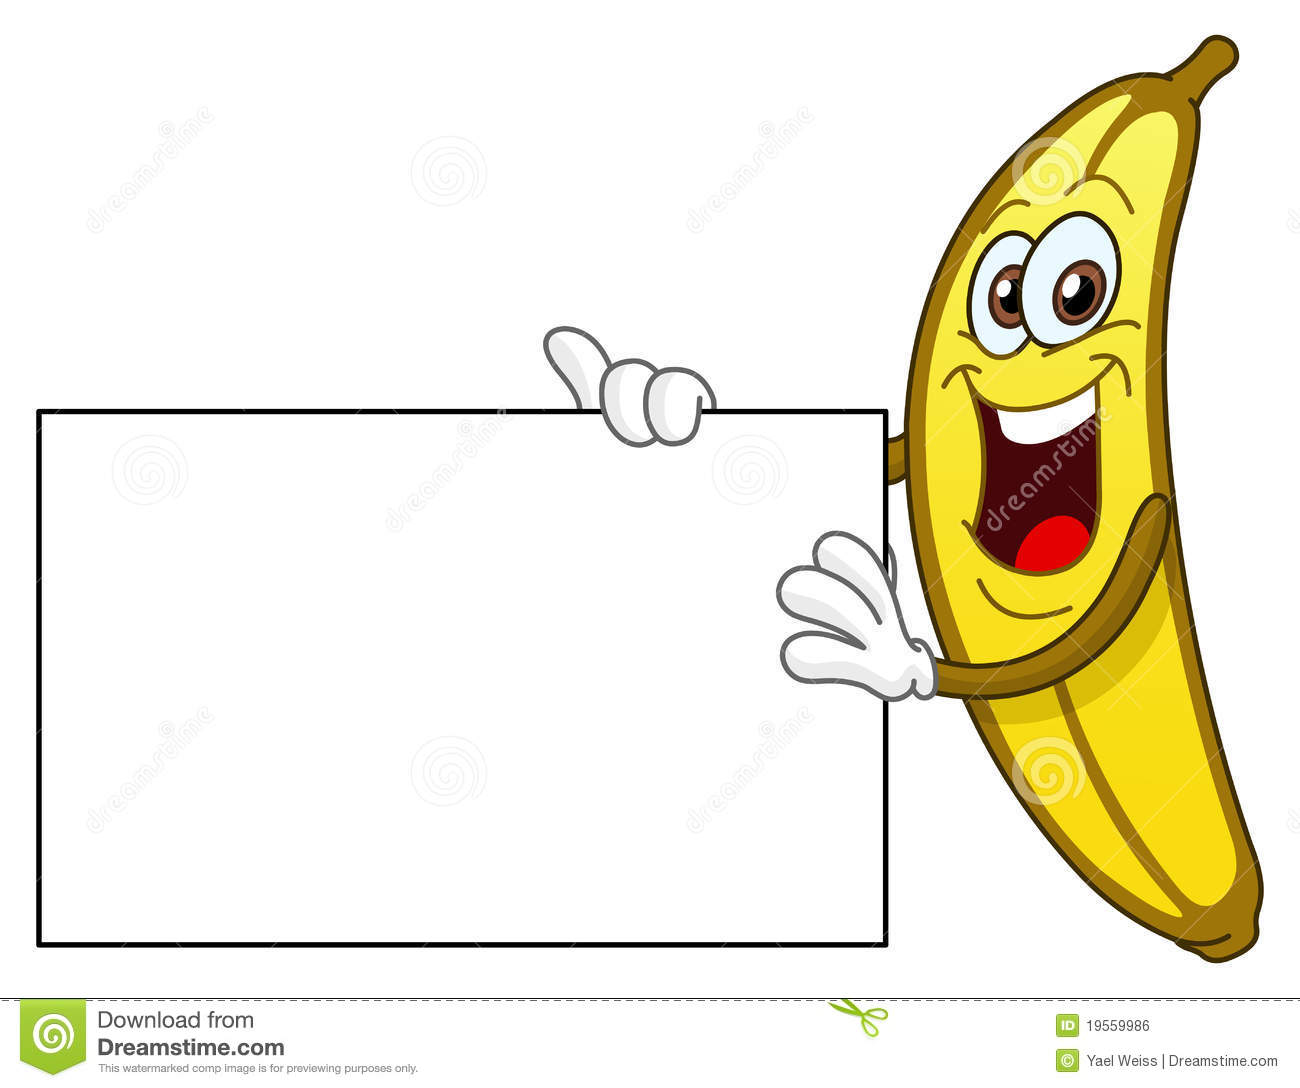 Royalty Free Stock Image Banana Holding Sign Image19559986 on banana cartoon character